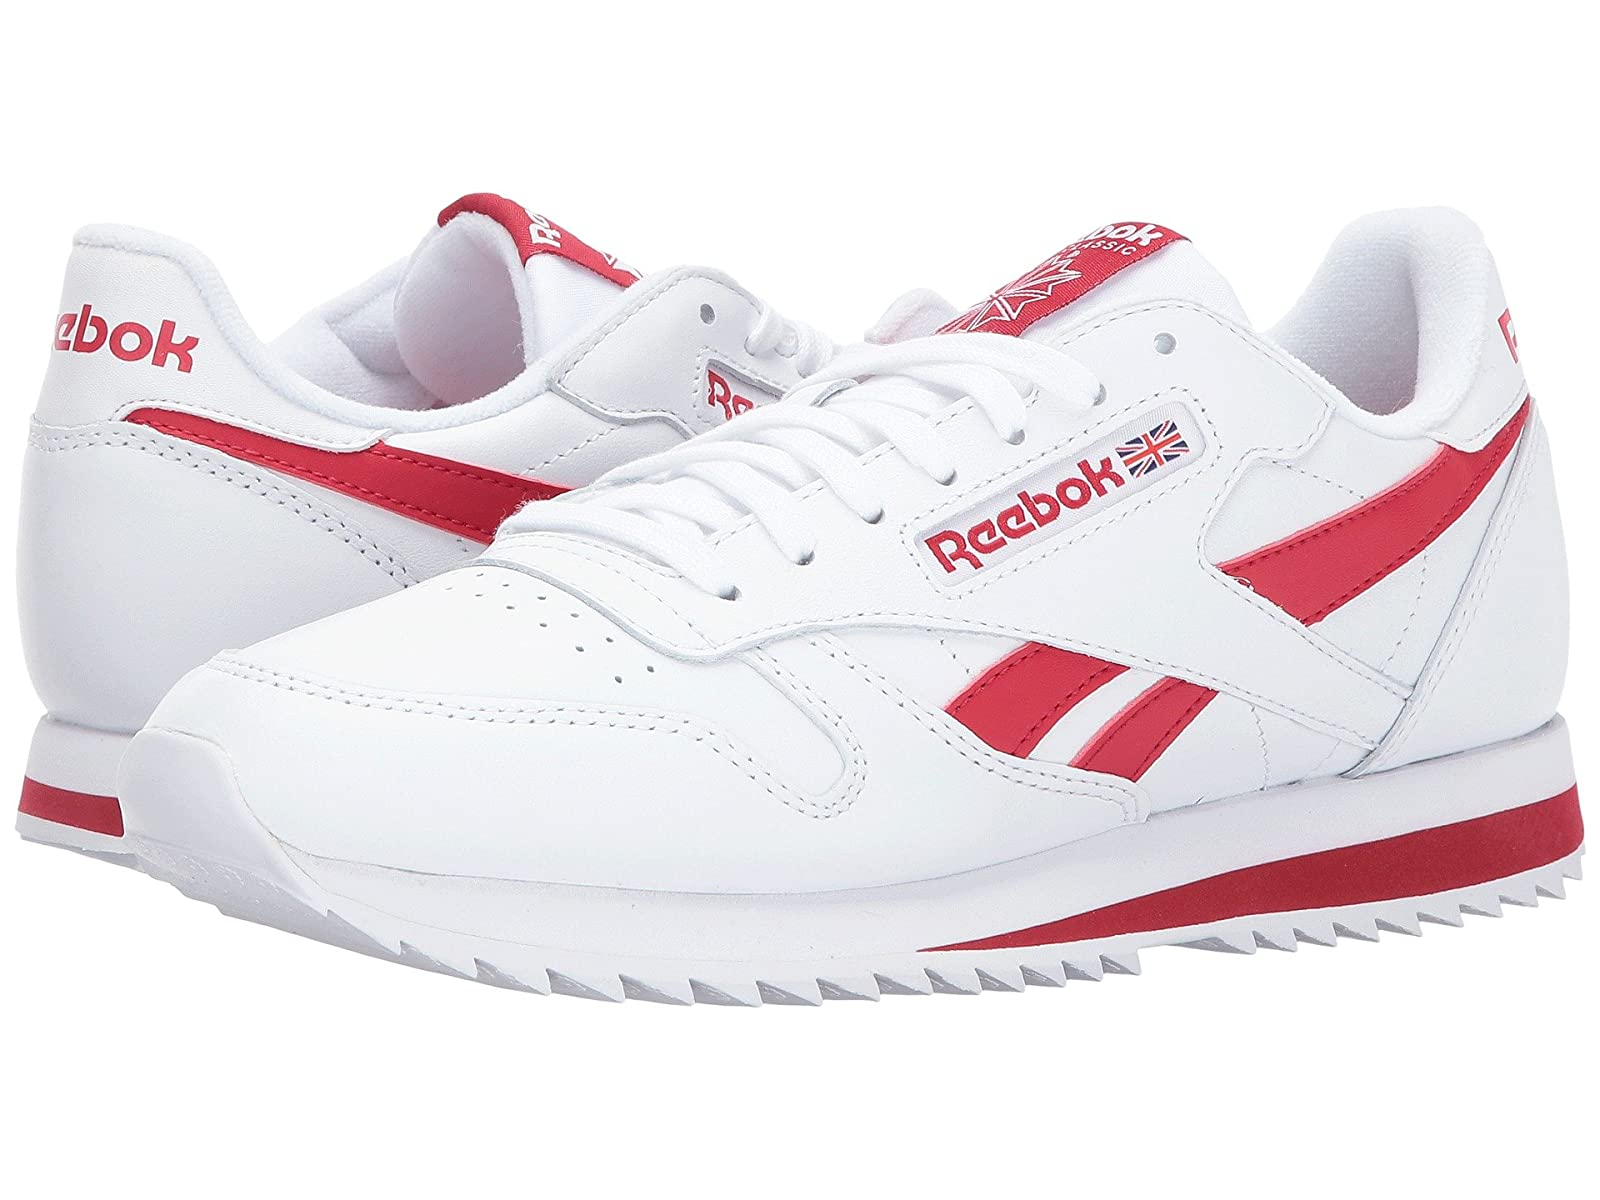 Reebok Lifestyle Classic Leather Ripple Low BPCheap and distinctive eye-catching shoes